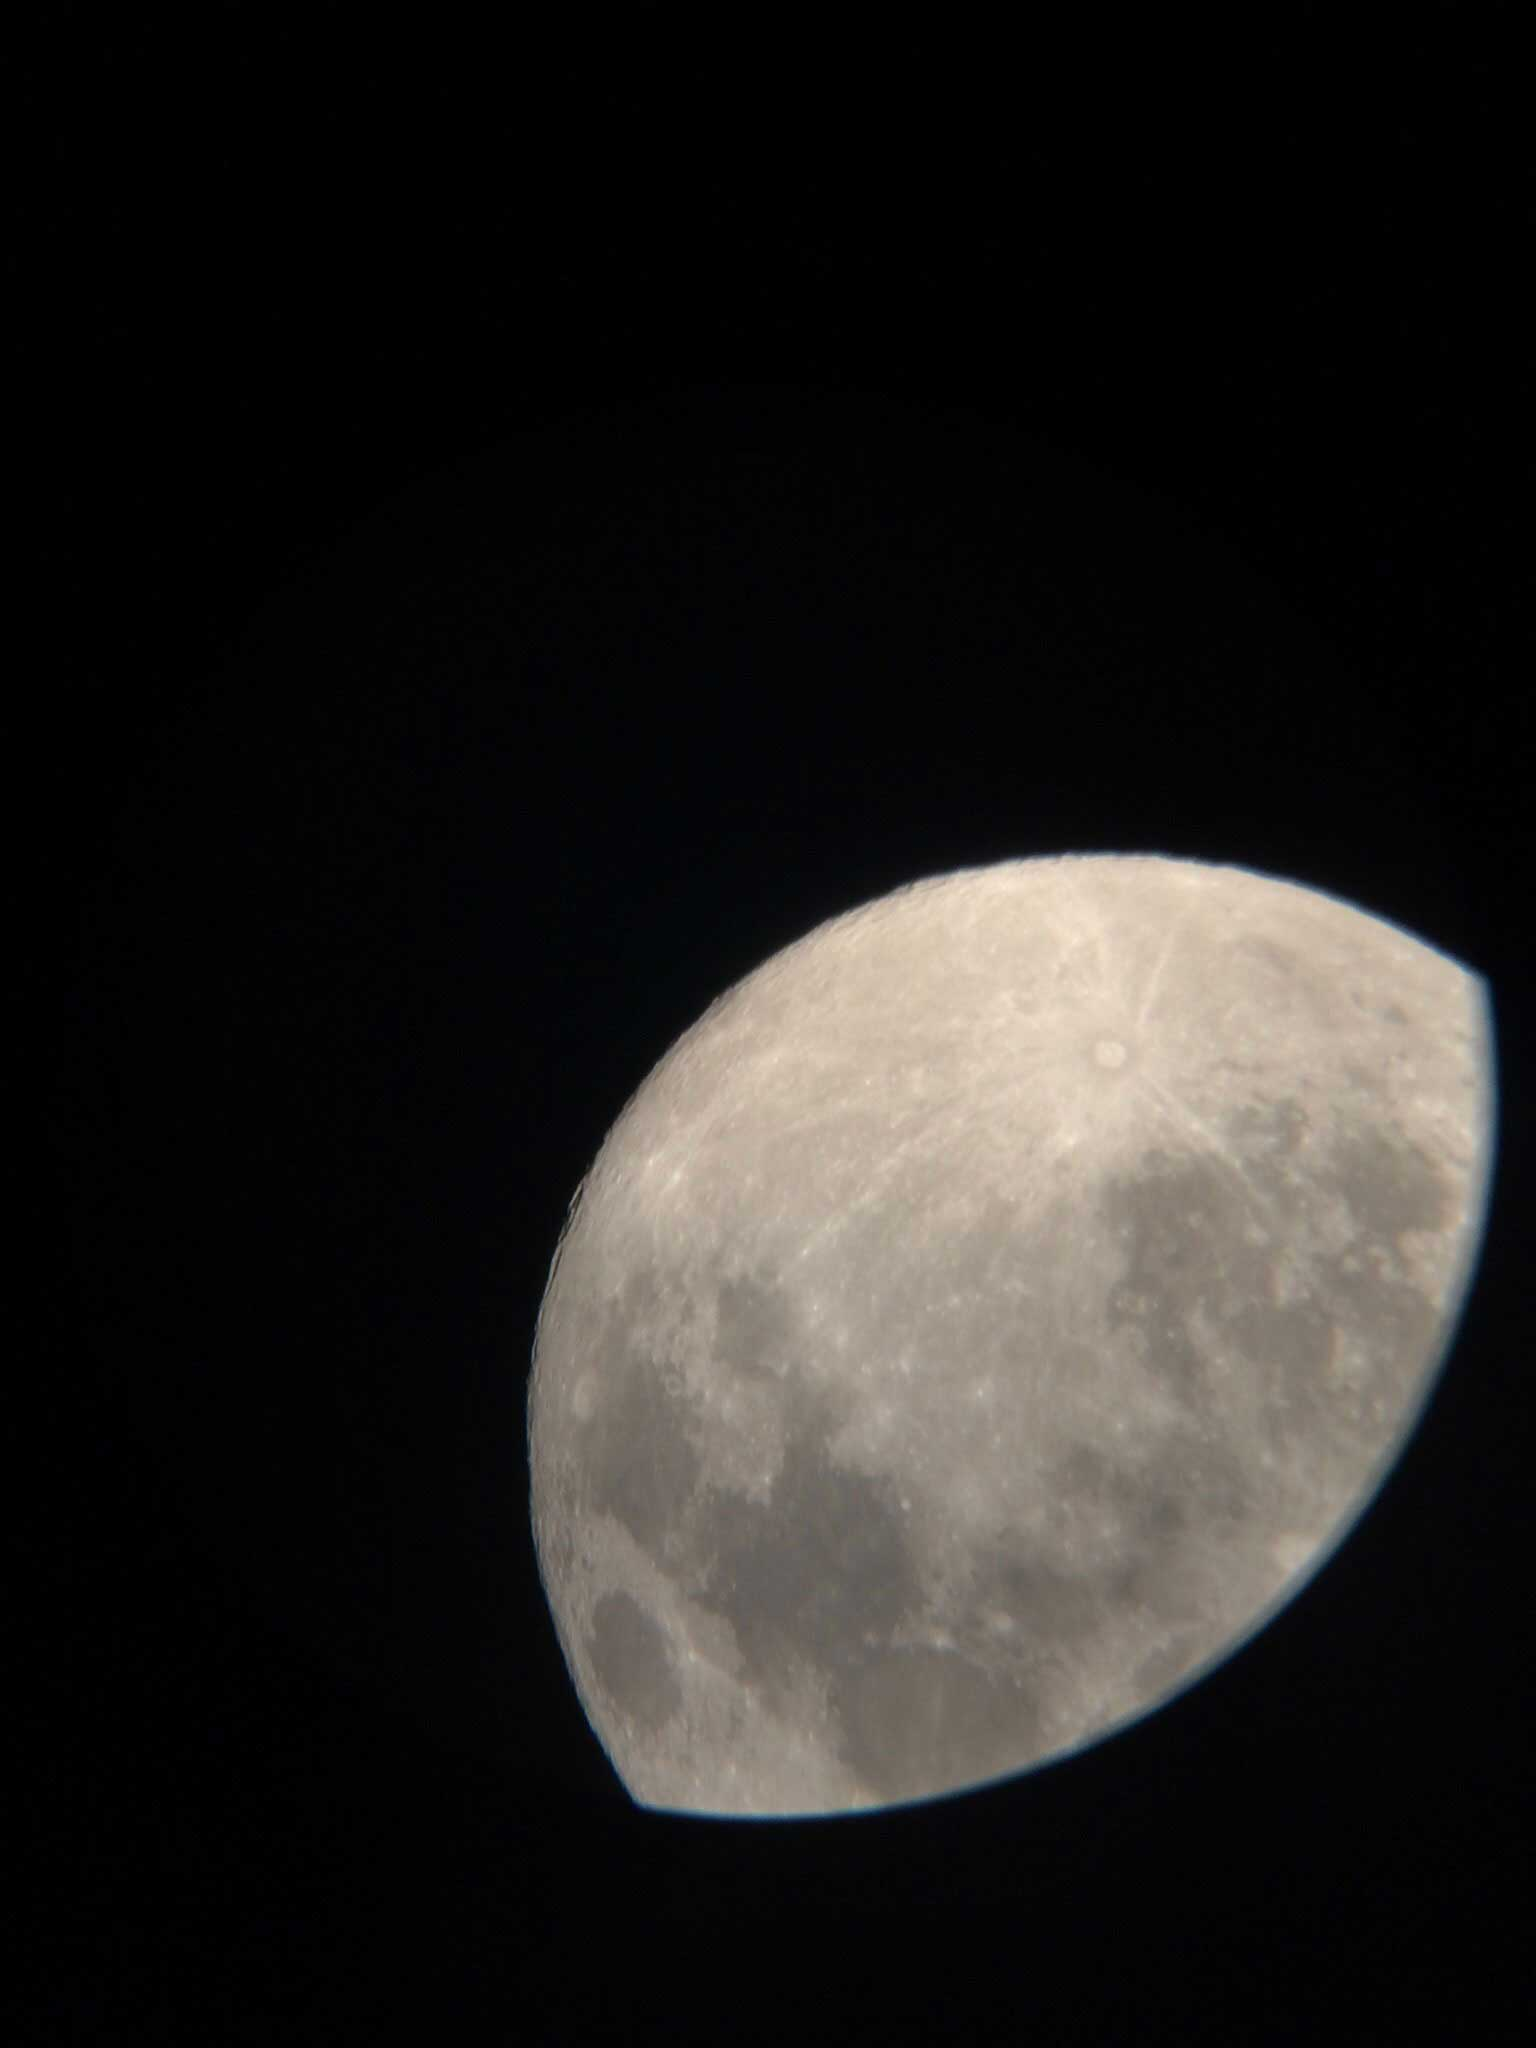 The moon seen through a telescope